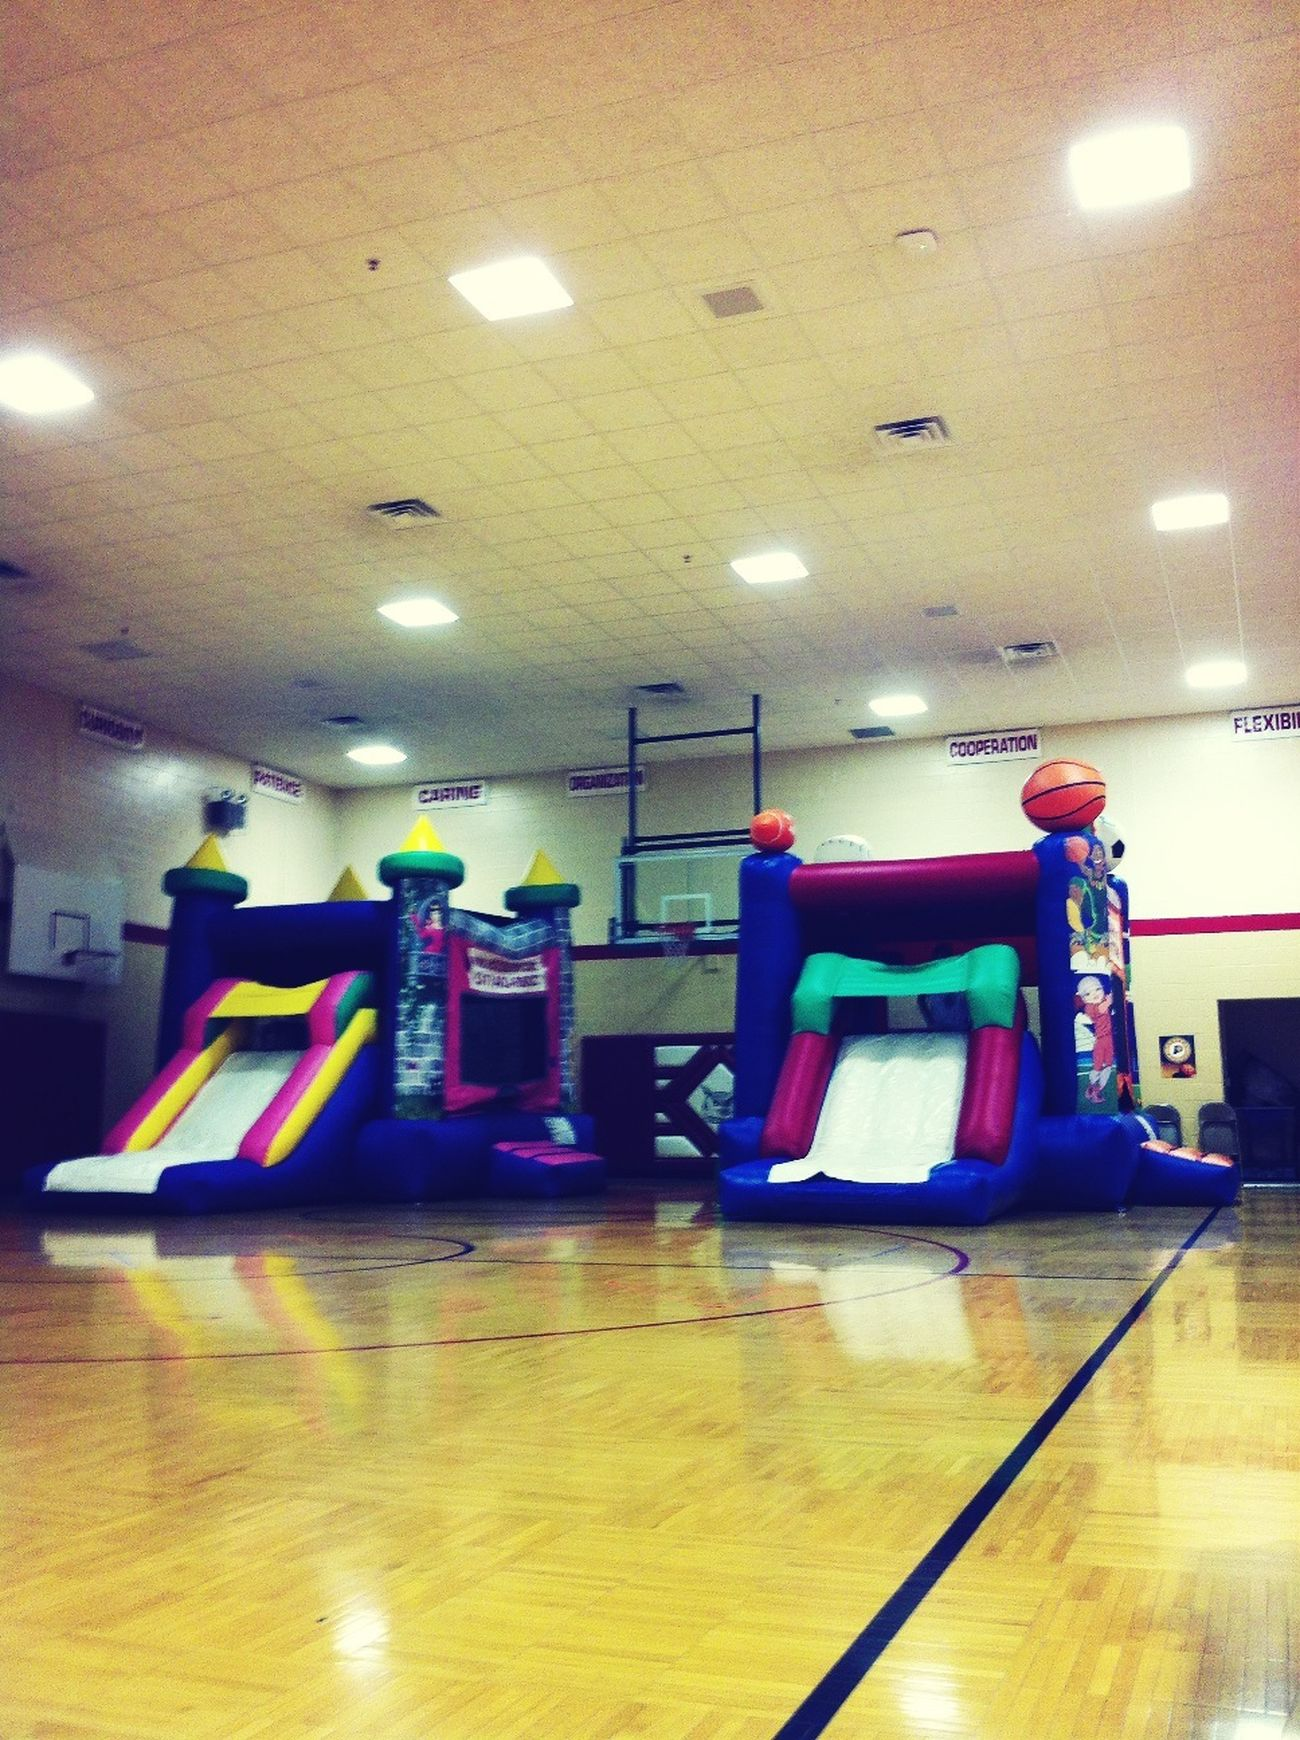 Two bounce houses be jealous!!!